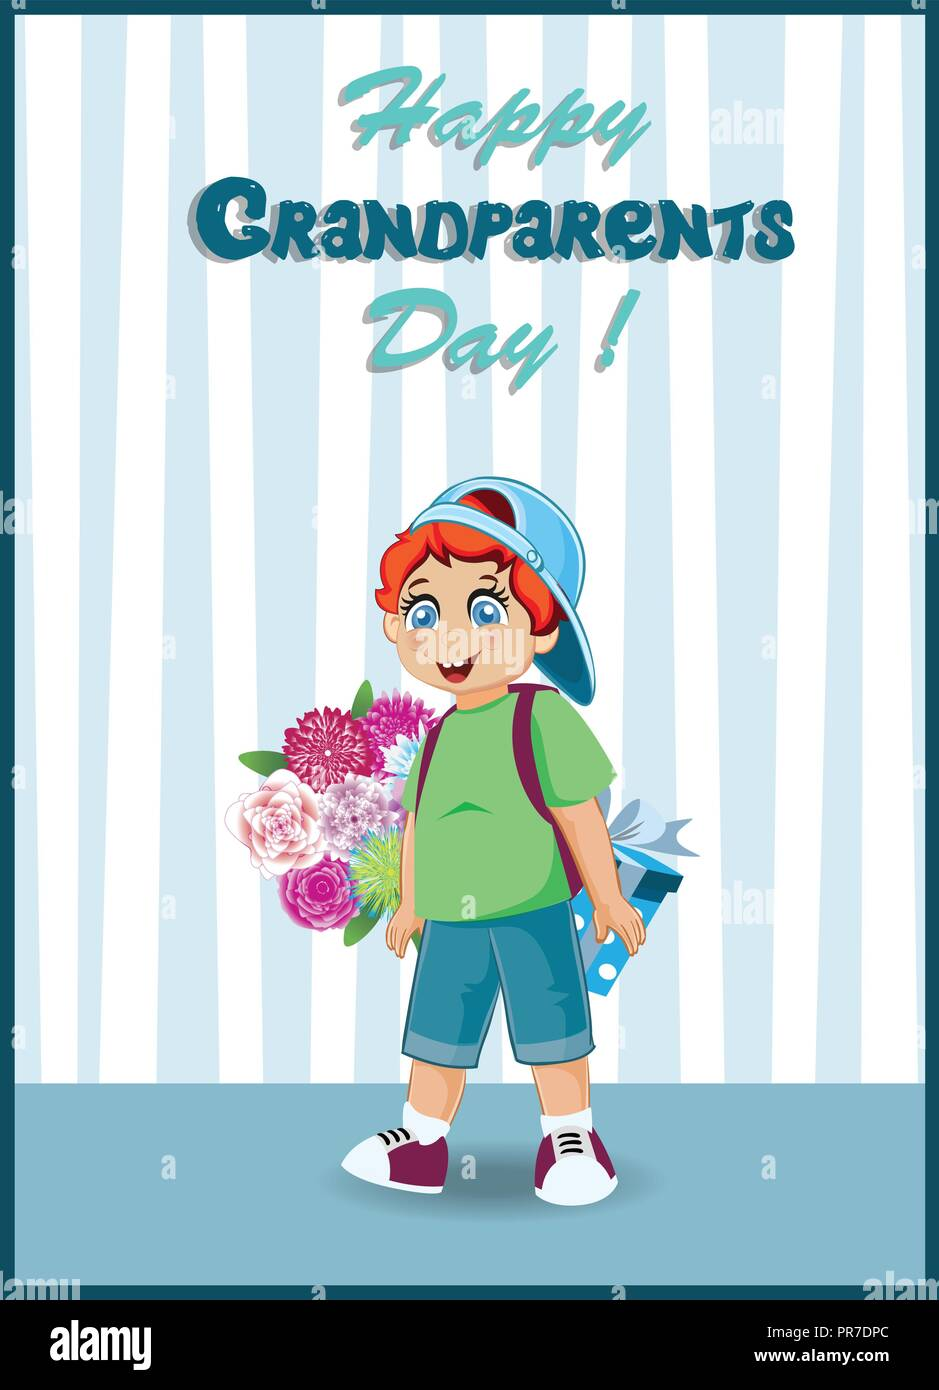 Happy grandparents day greeting card cartoon vector illustration of happy grandparents day greeting card cartoon vector illustration of cute grandson boy with bunch of flowers and gift box for grandma and grandpa in t m4hsunfo